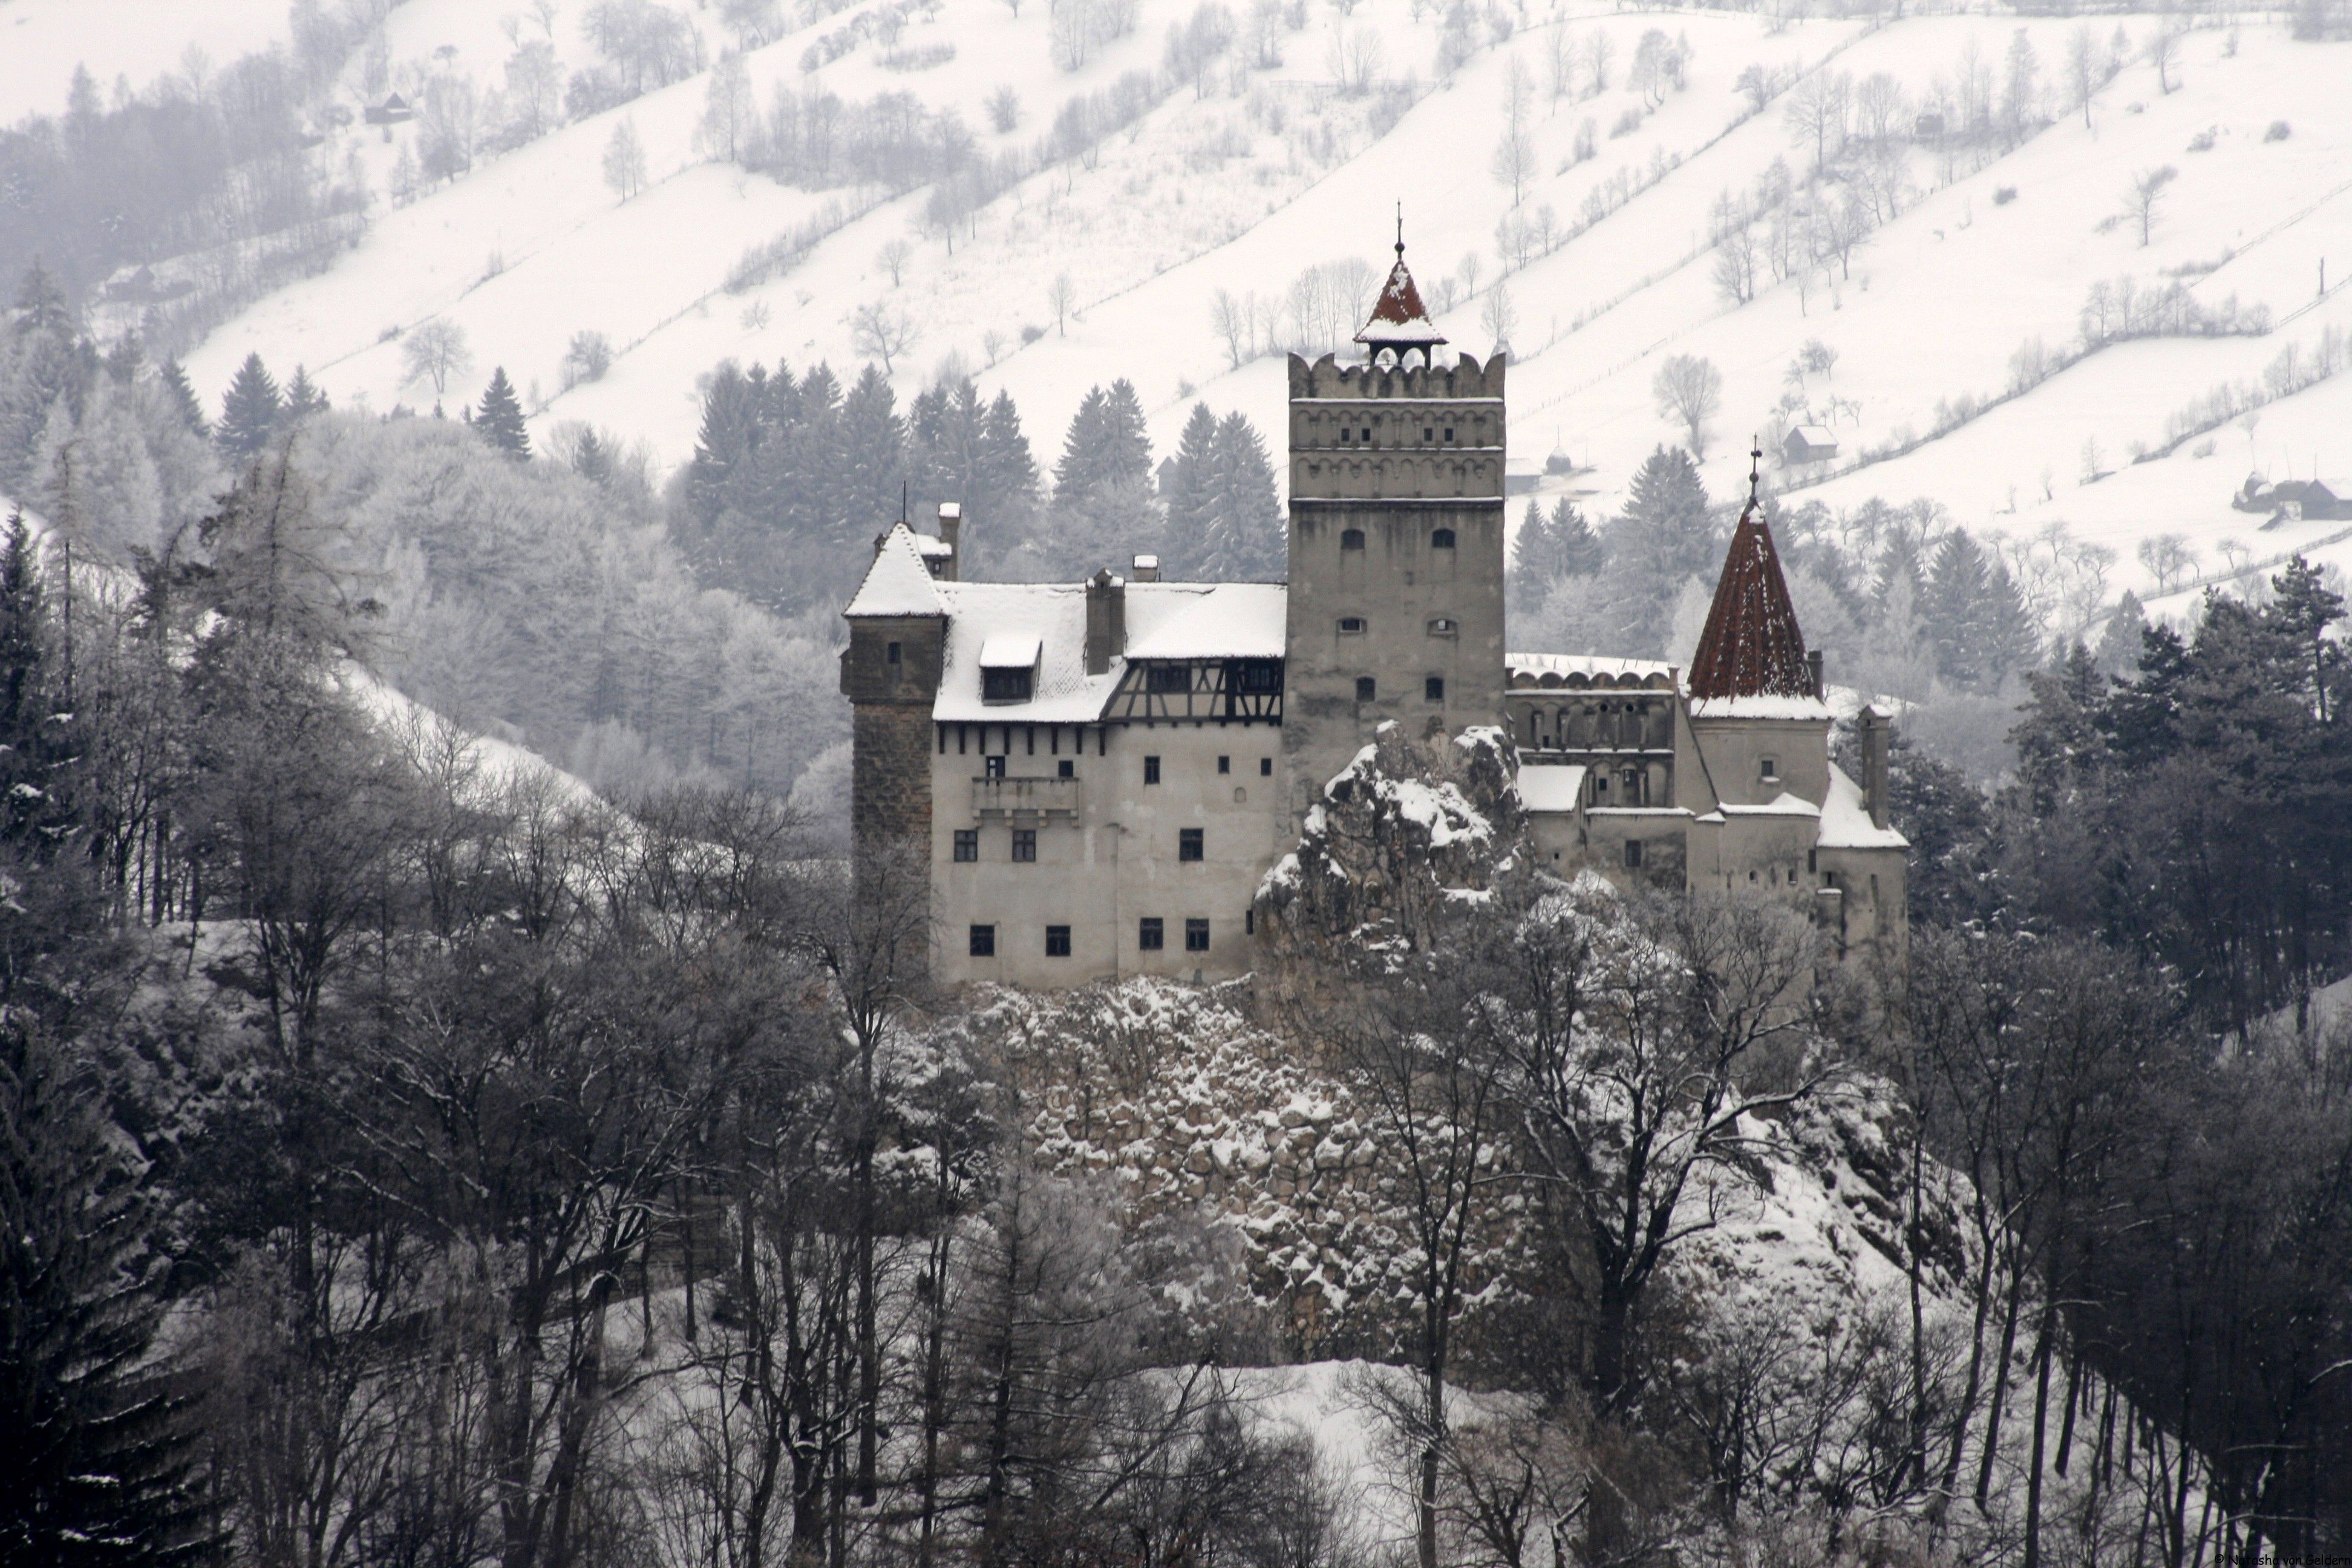 real castles in mountains pictures | Destination Romania: Bran Castle and Transylvania - World Wandering ...